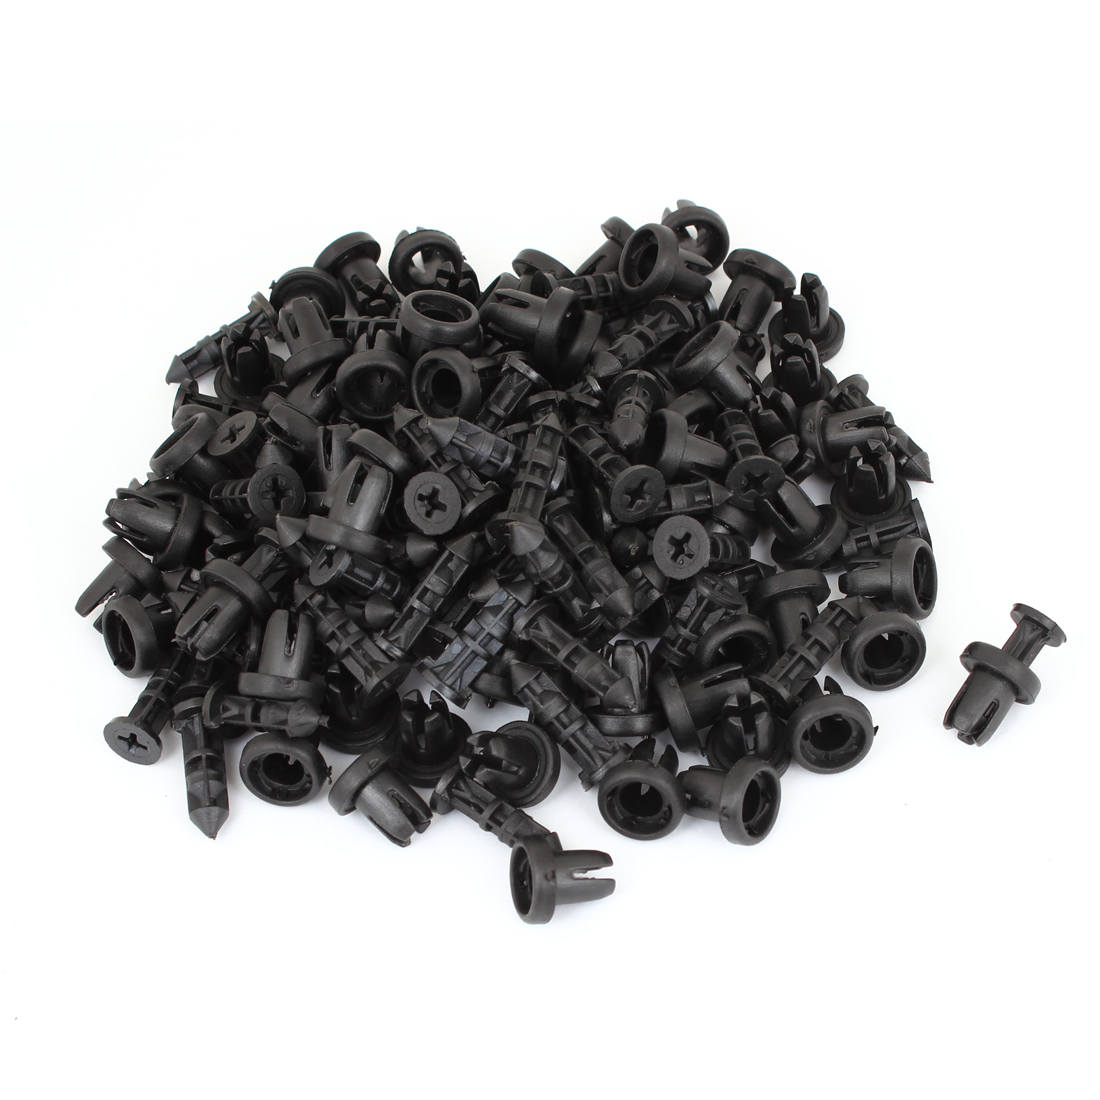 100 Pcs Vehicle 9mm Hole Black Door Plastic Replacement Rivets Fasteners